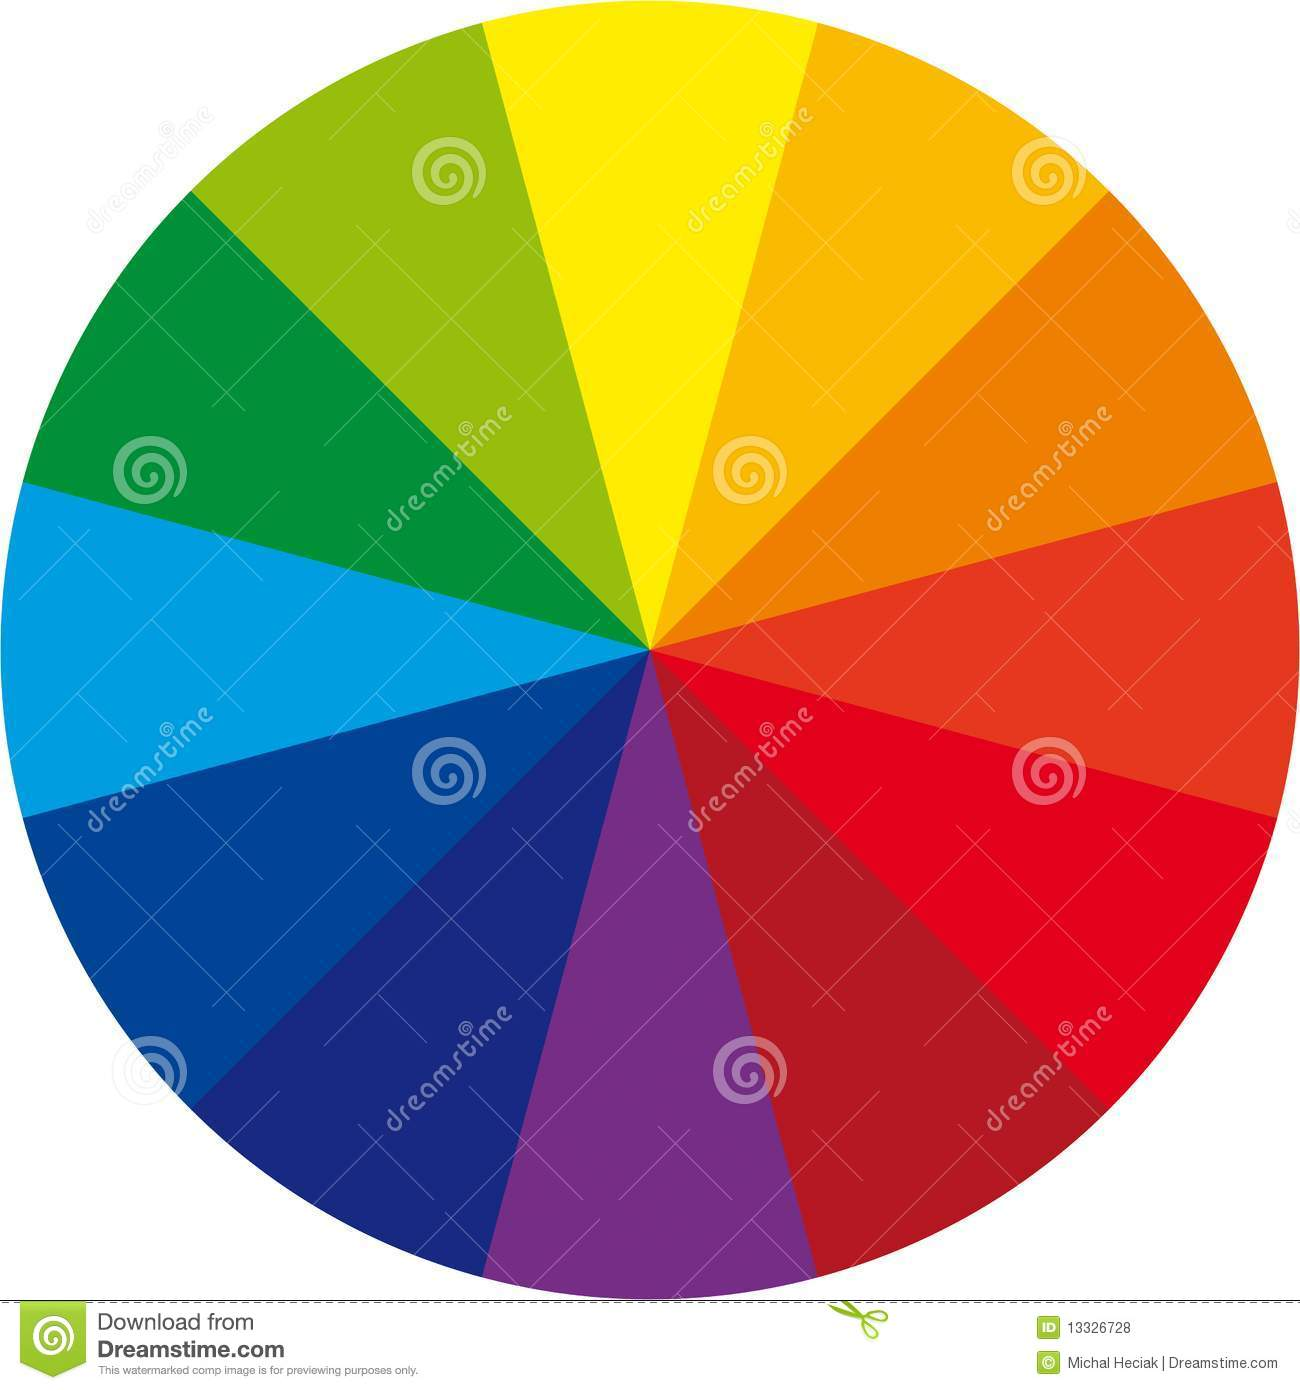 Basic Color Wheel Stock Vector Illustration Of Colour